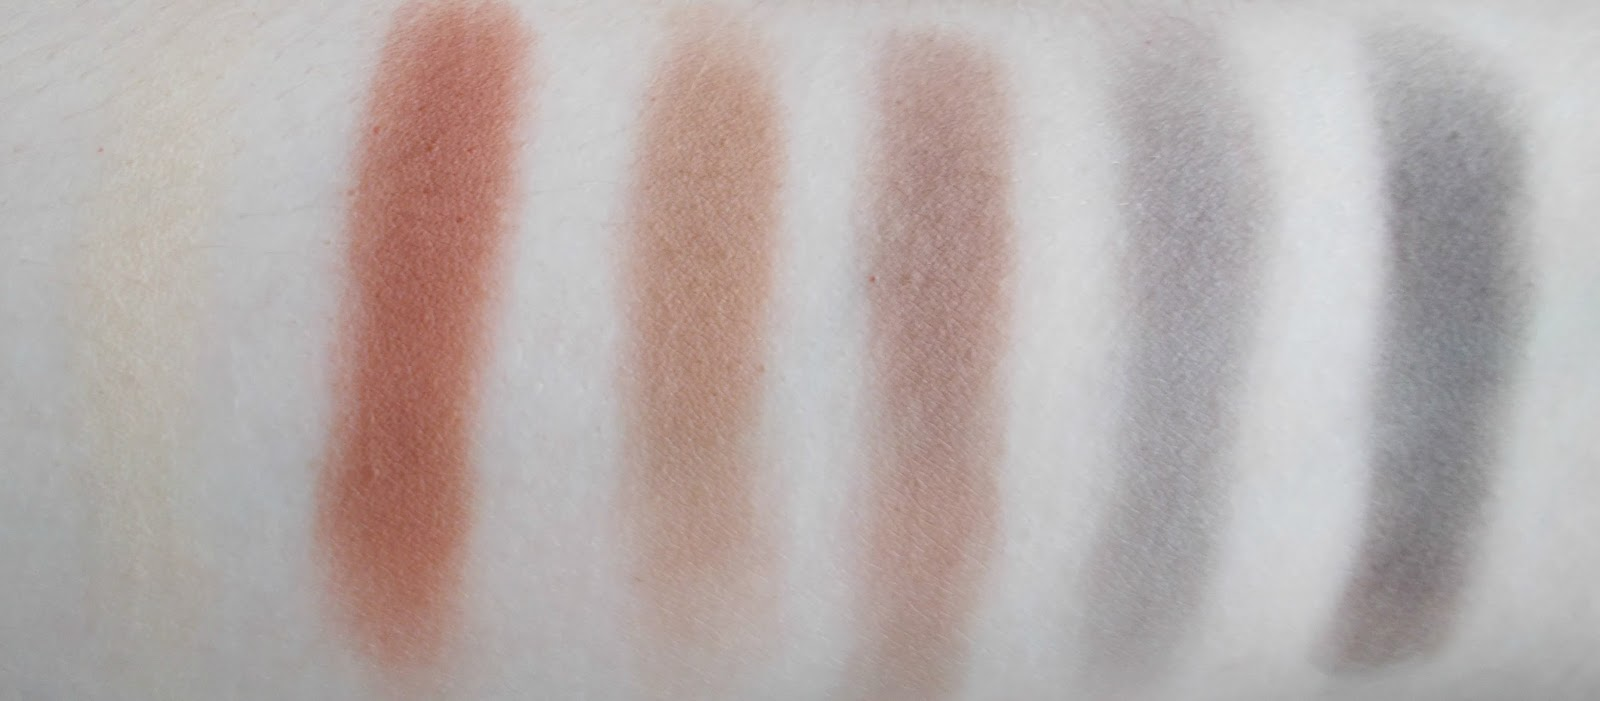 Urban Decay Naked Ultimate Basics swatches 2nd row